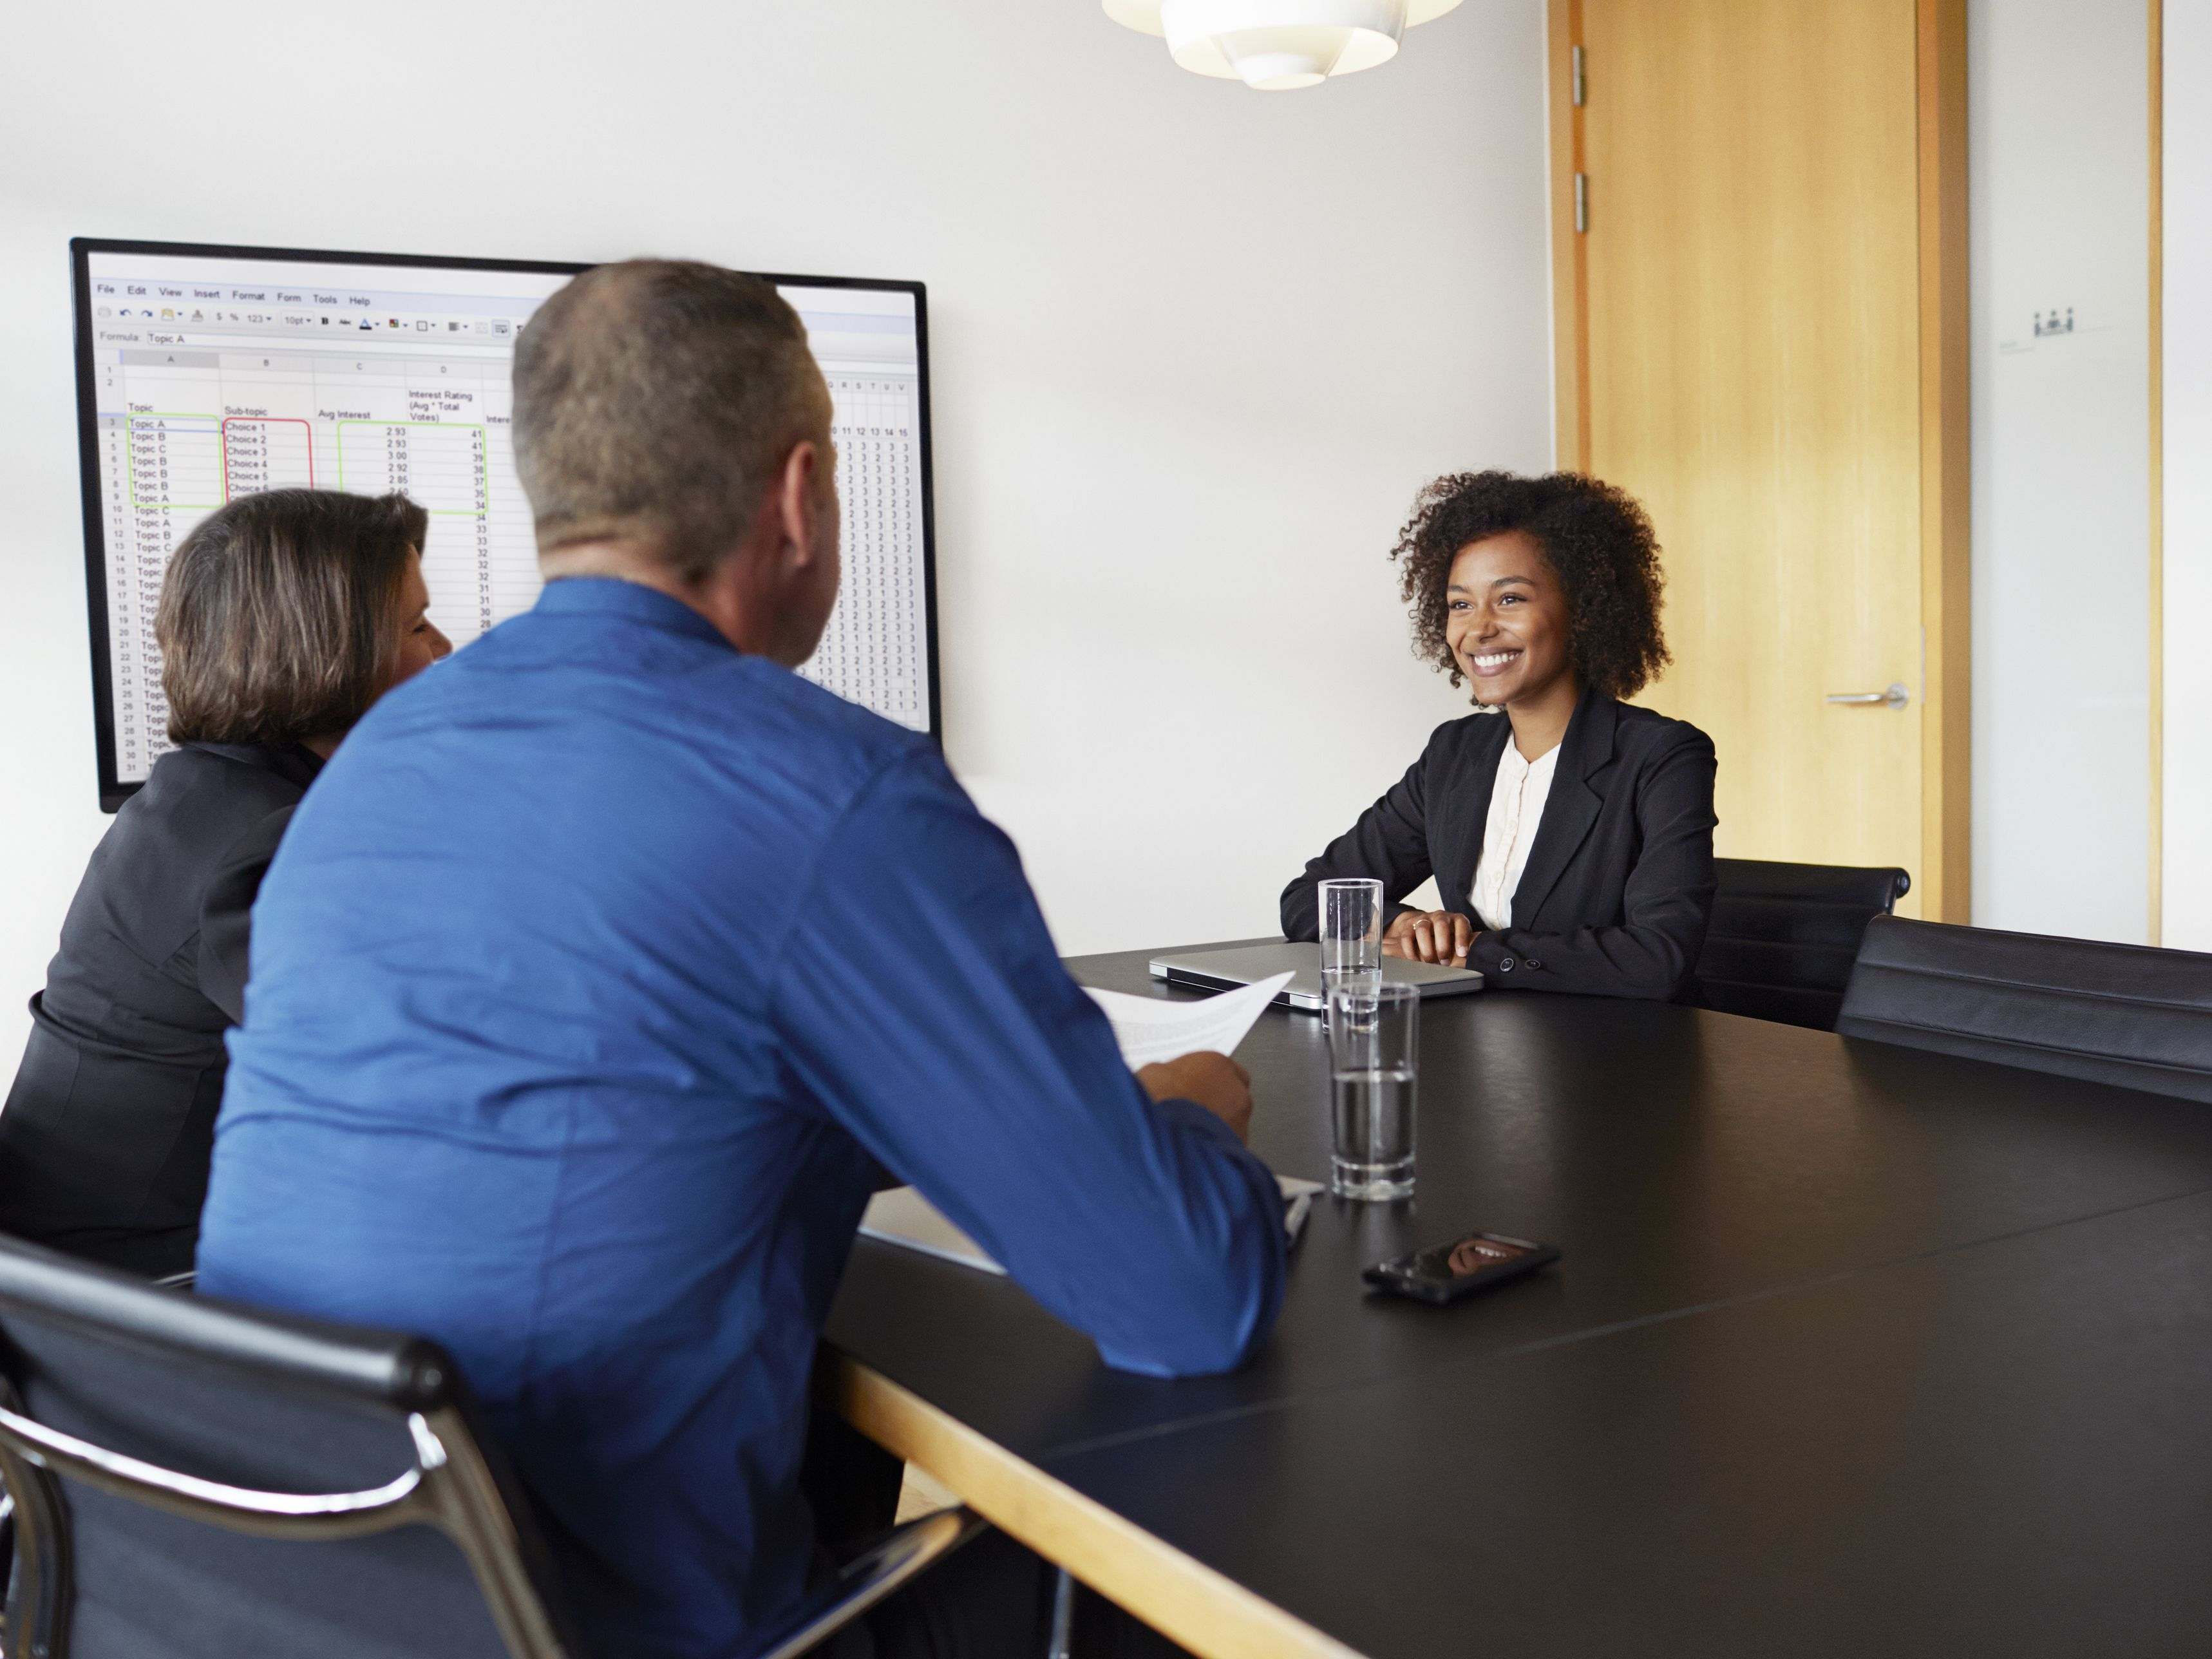 What Are Your Strengths And Weaknesses Interview Tips For Teachers